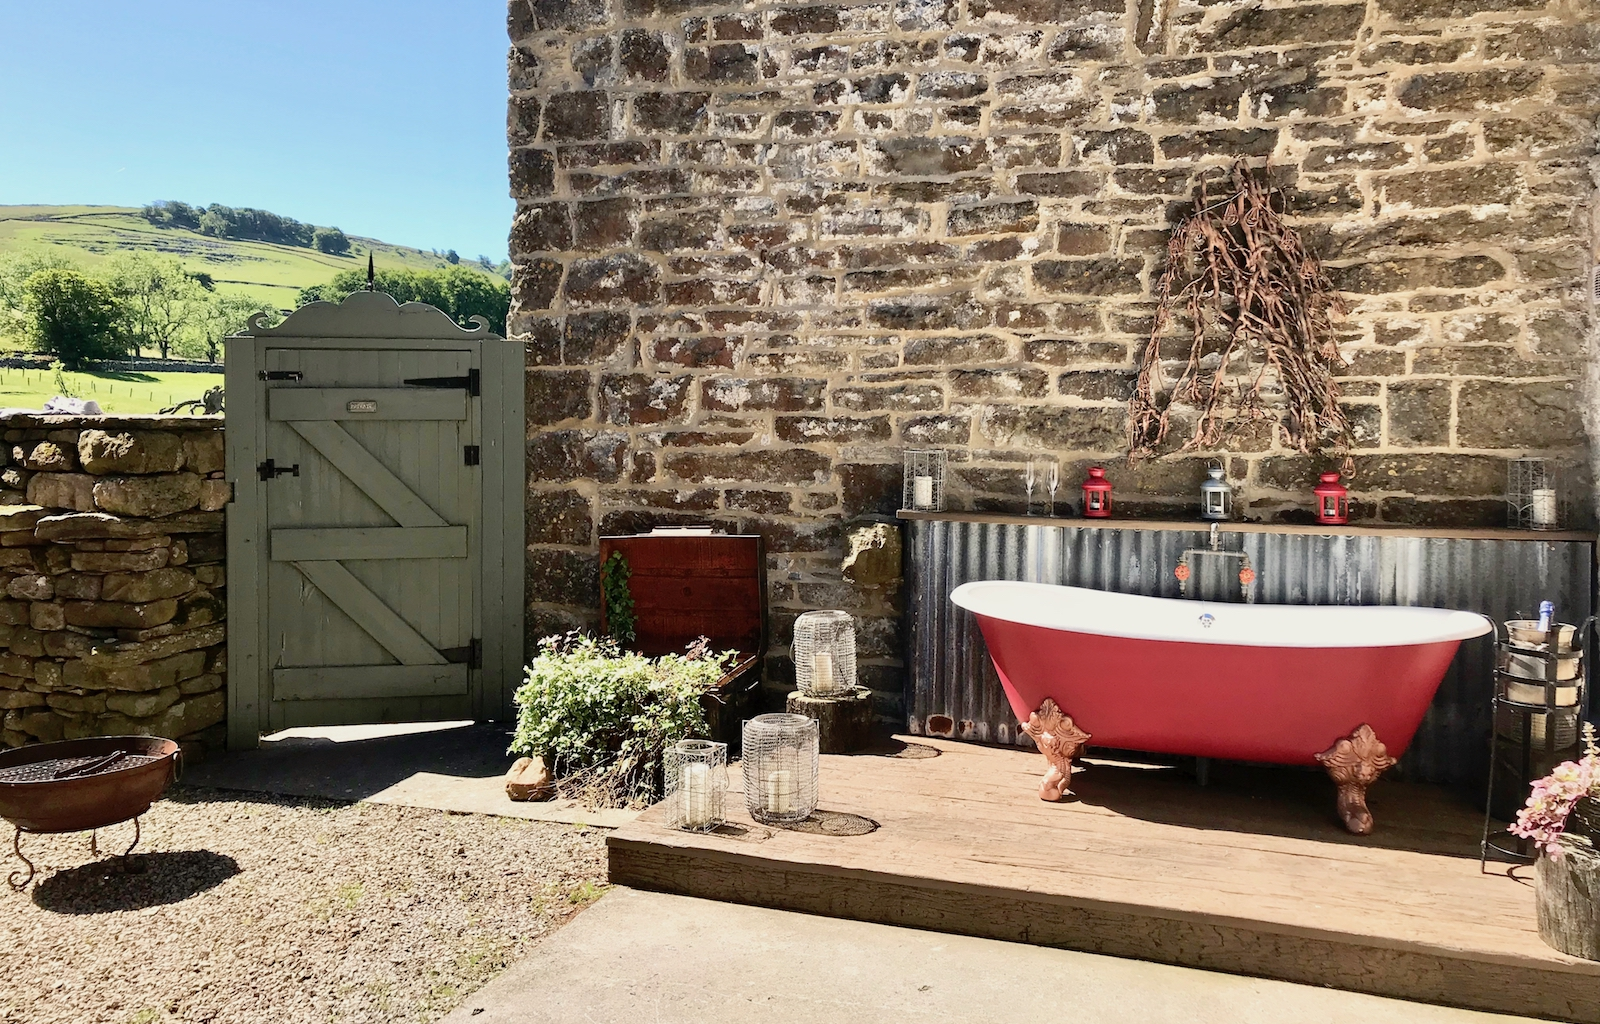 Check out the outdoor roll top bath, bubbles anyone?